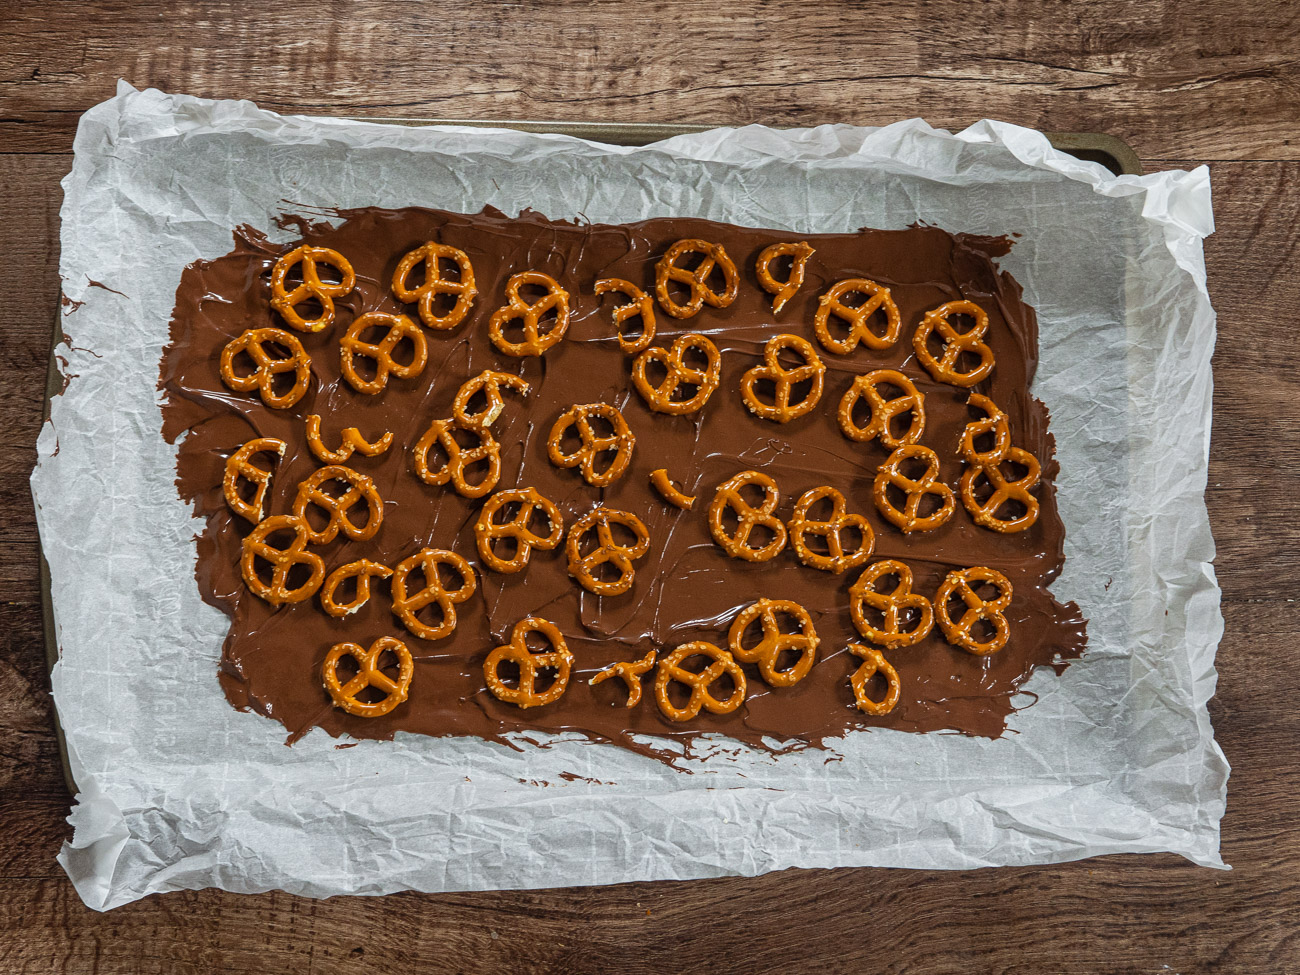 Spread an even layer of pretzels over the chocolate.